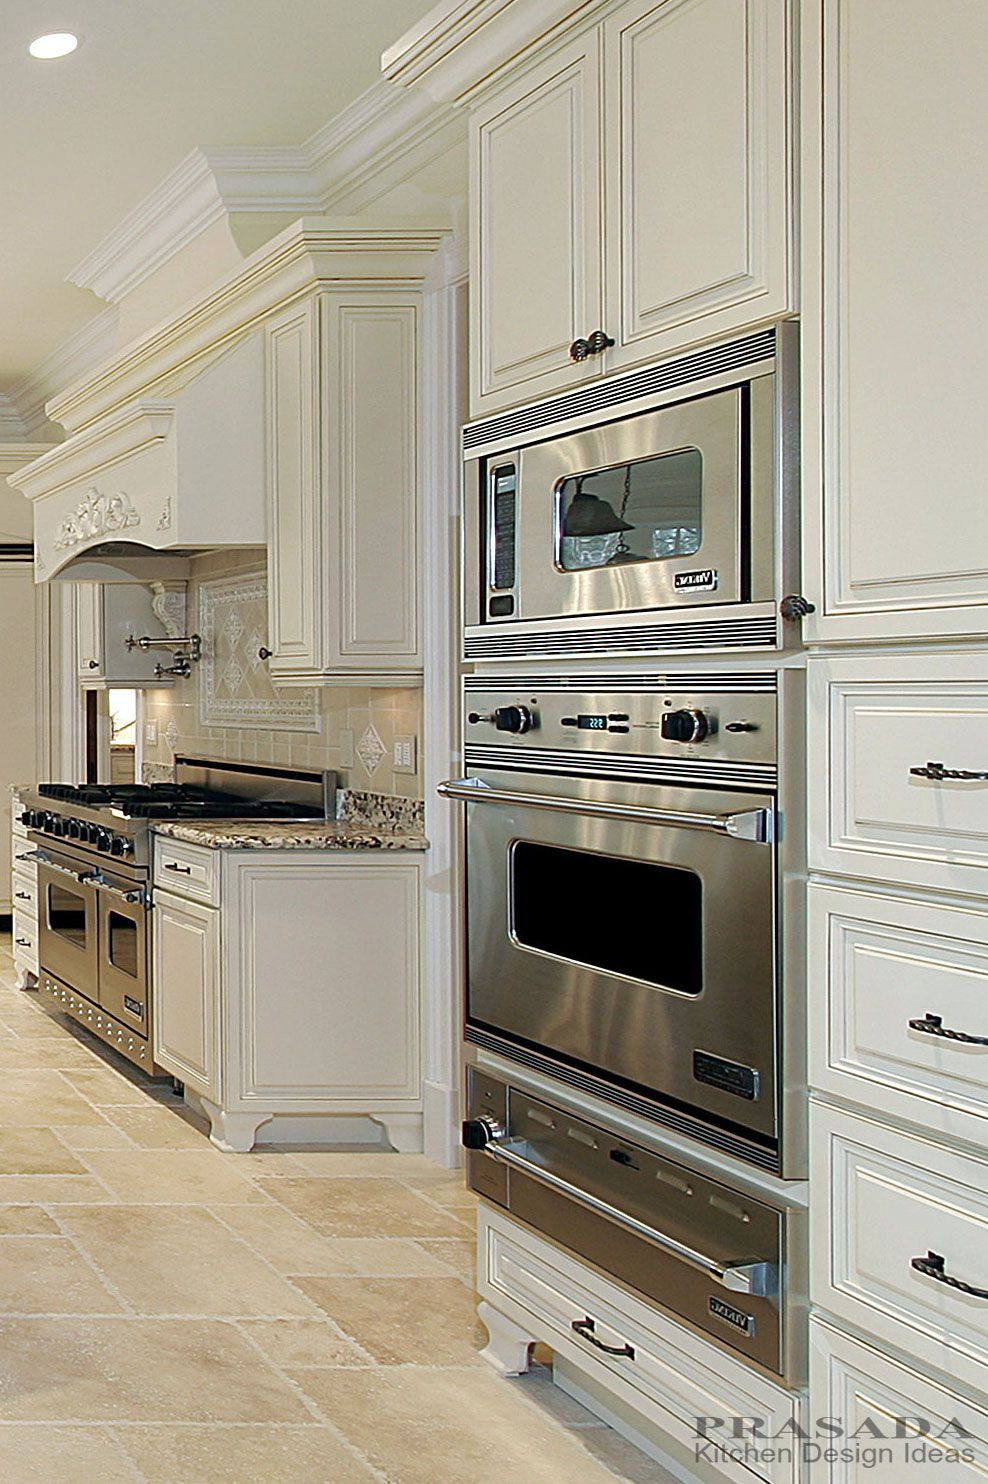 Kitchen Design Ideas  Kitchen Design Kitchens And Wall Ovens Pleasing Www.kitchen Designs Design Inspiration